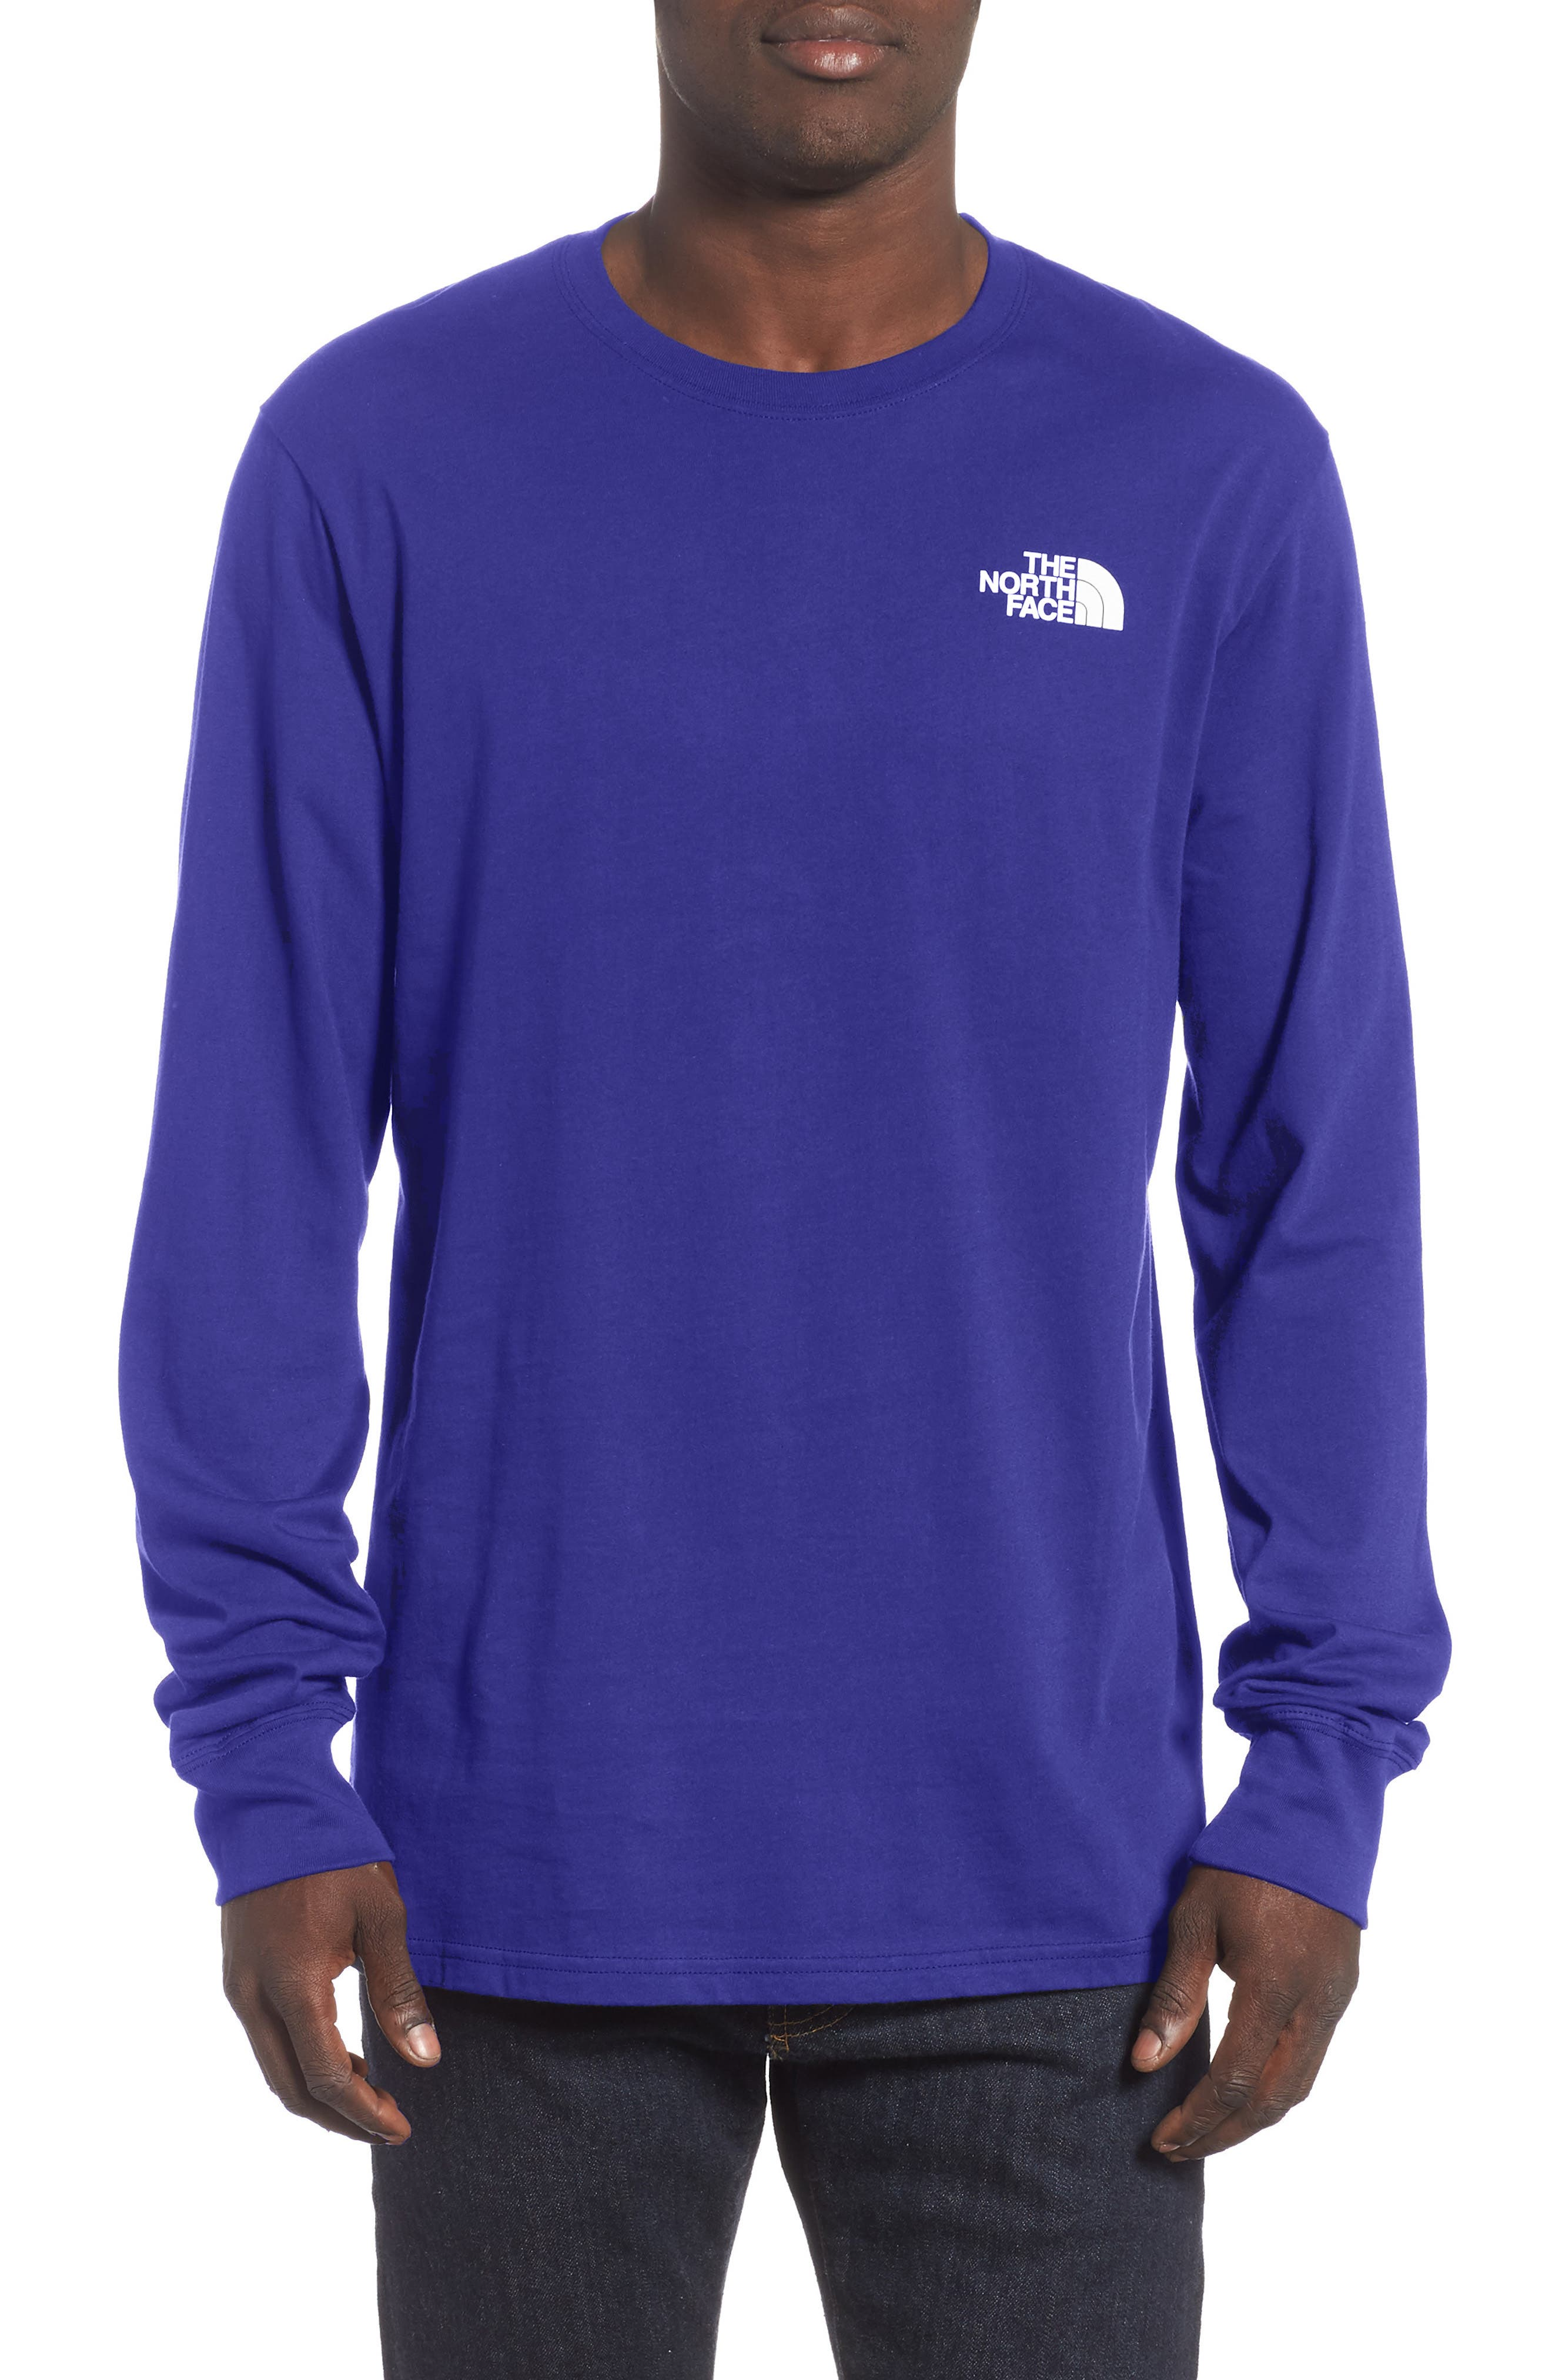 The North Face Red Box Long Sleeve T-Shirt, Blue